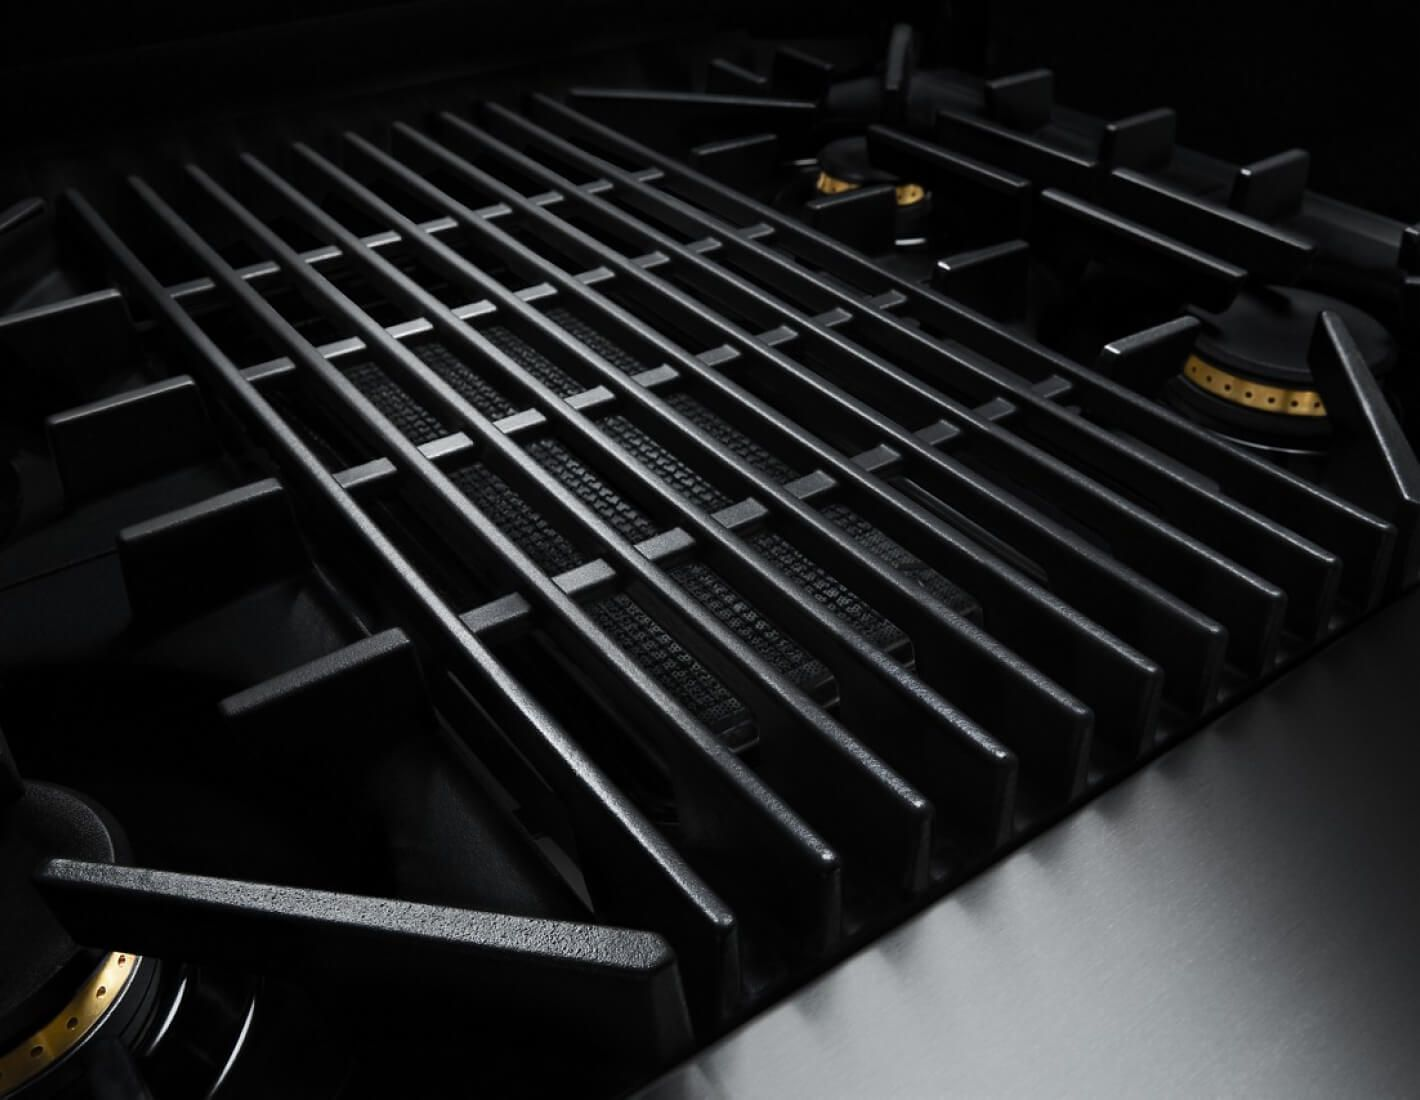 A RISE range with a grill.